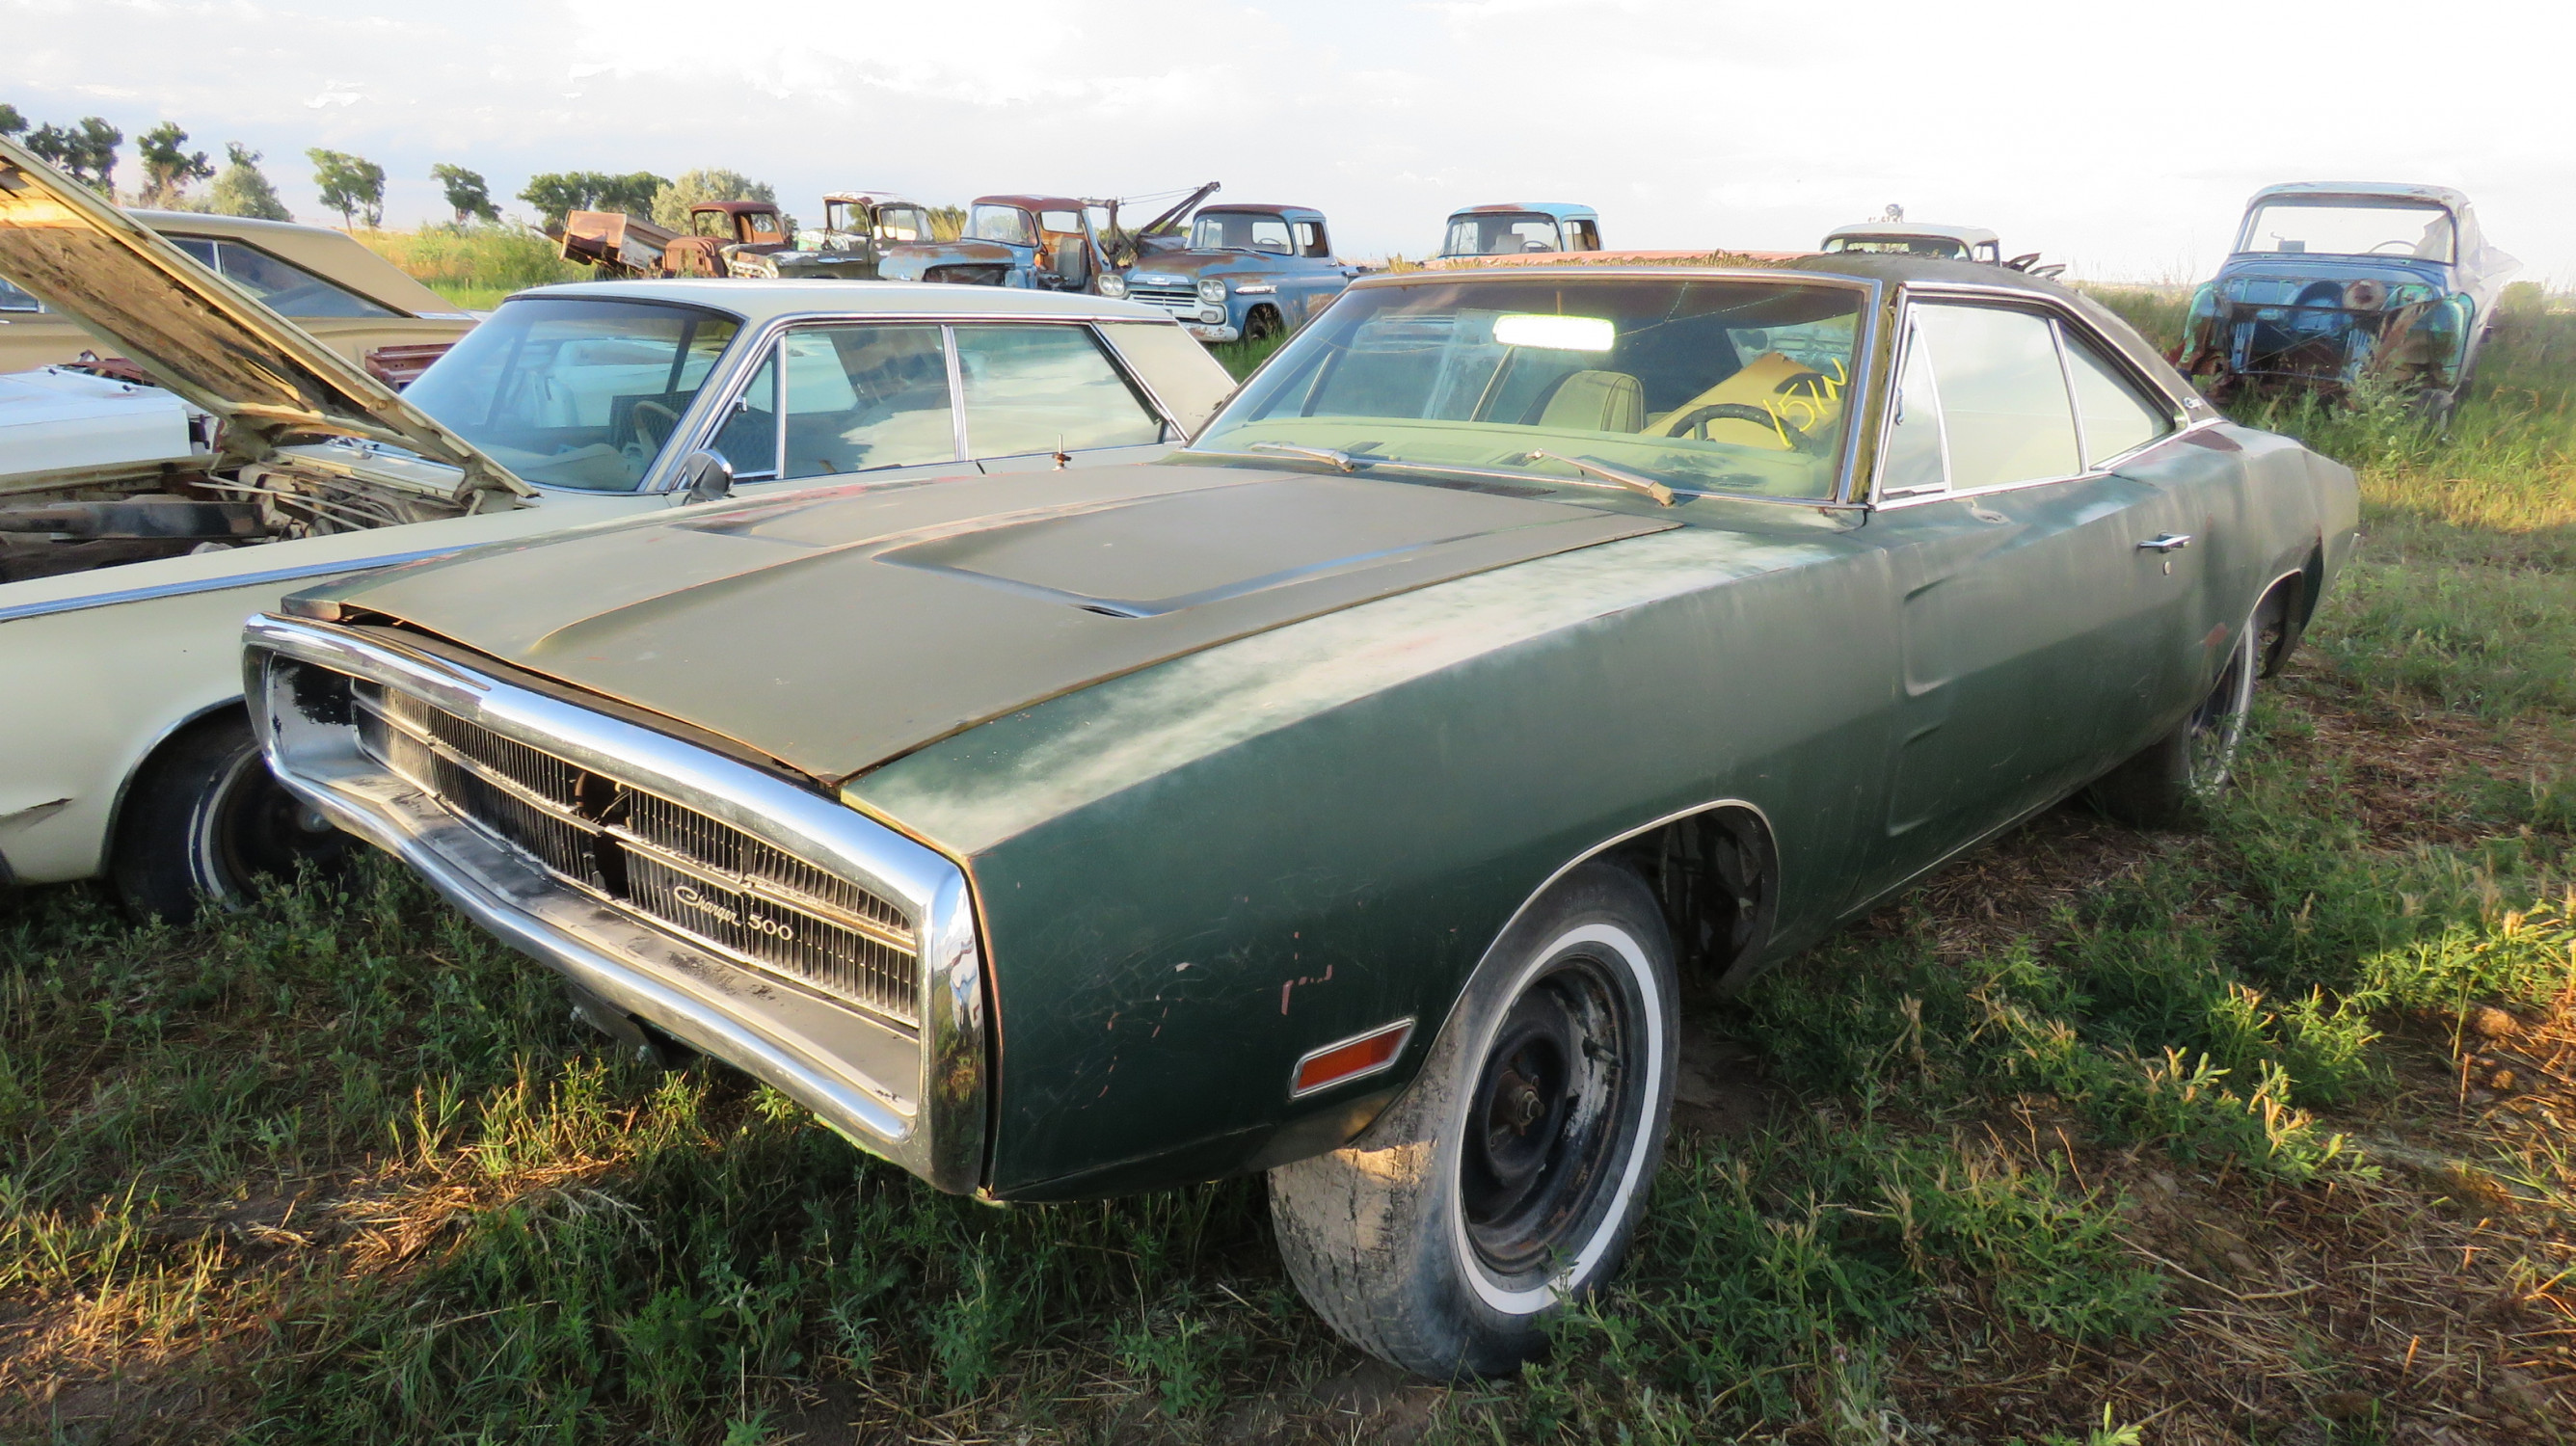 1970 DODGE CHARGER 500 ROLLING PROJECT - Image 6